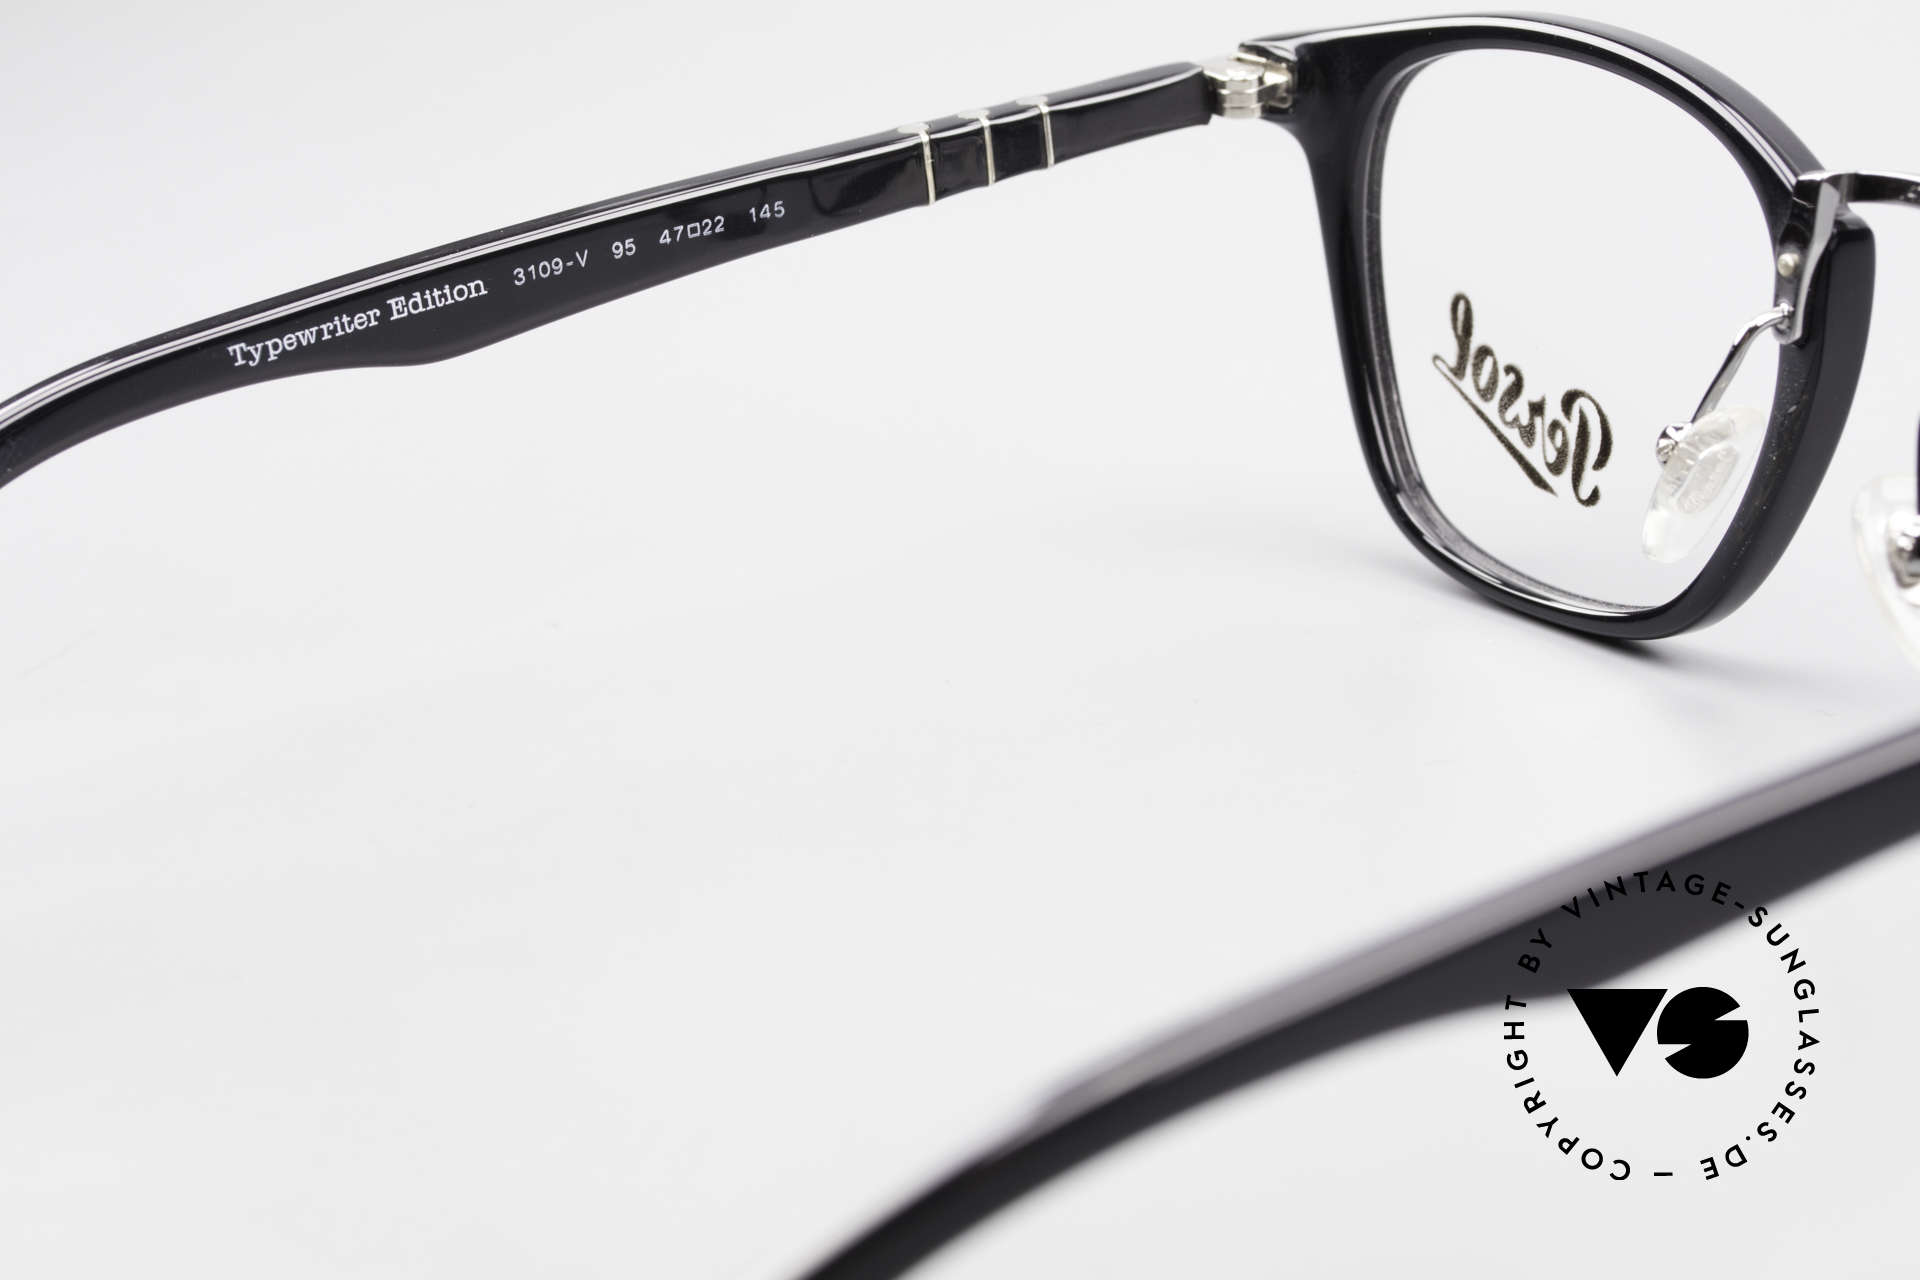 Persol 3109 Typewriter Edition Eyewear, unisex model = suitable for ladies & gentlemen, Made for Men and Women